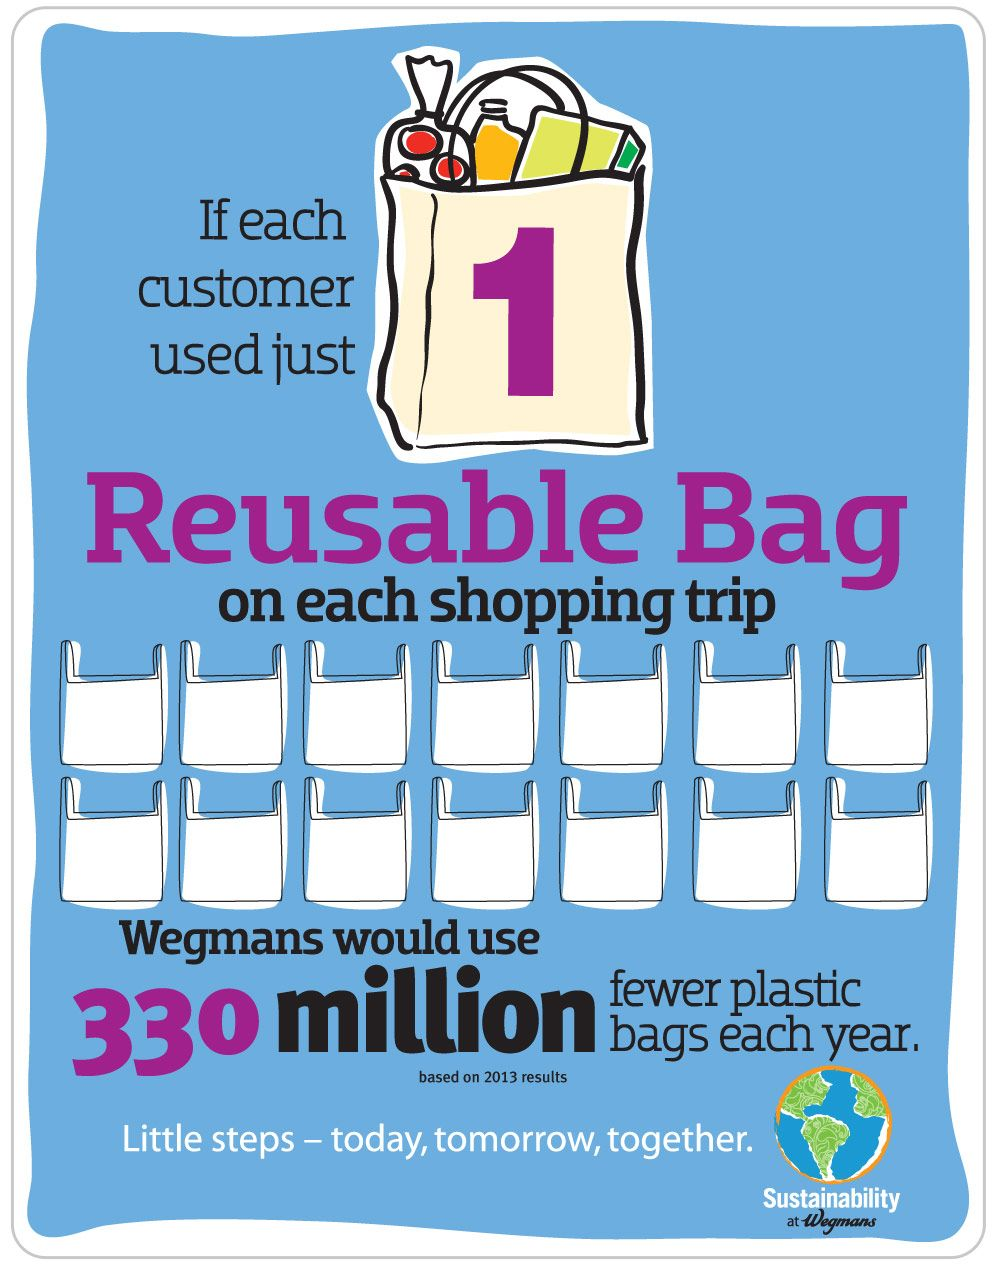 If Each Customer Used Just 1 Reusable Bag On Ping Trip Wegmans Would Use 330 Million Fewer Plastic Bags Year